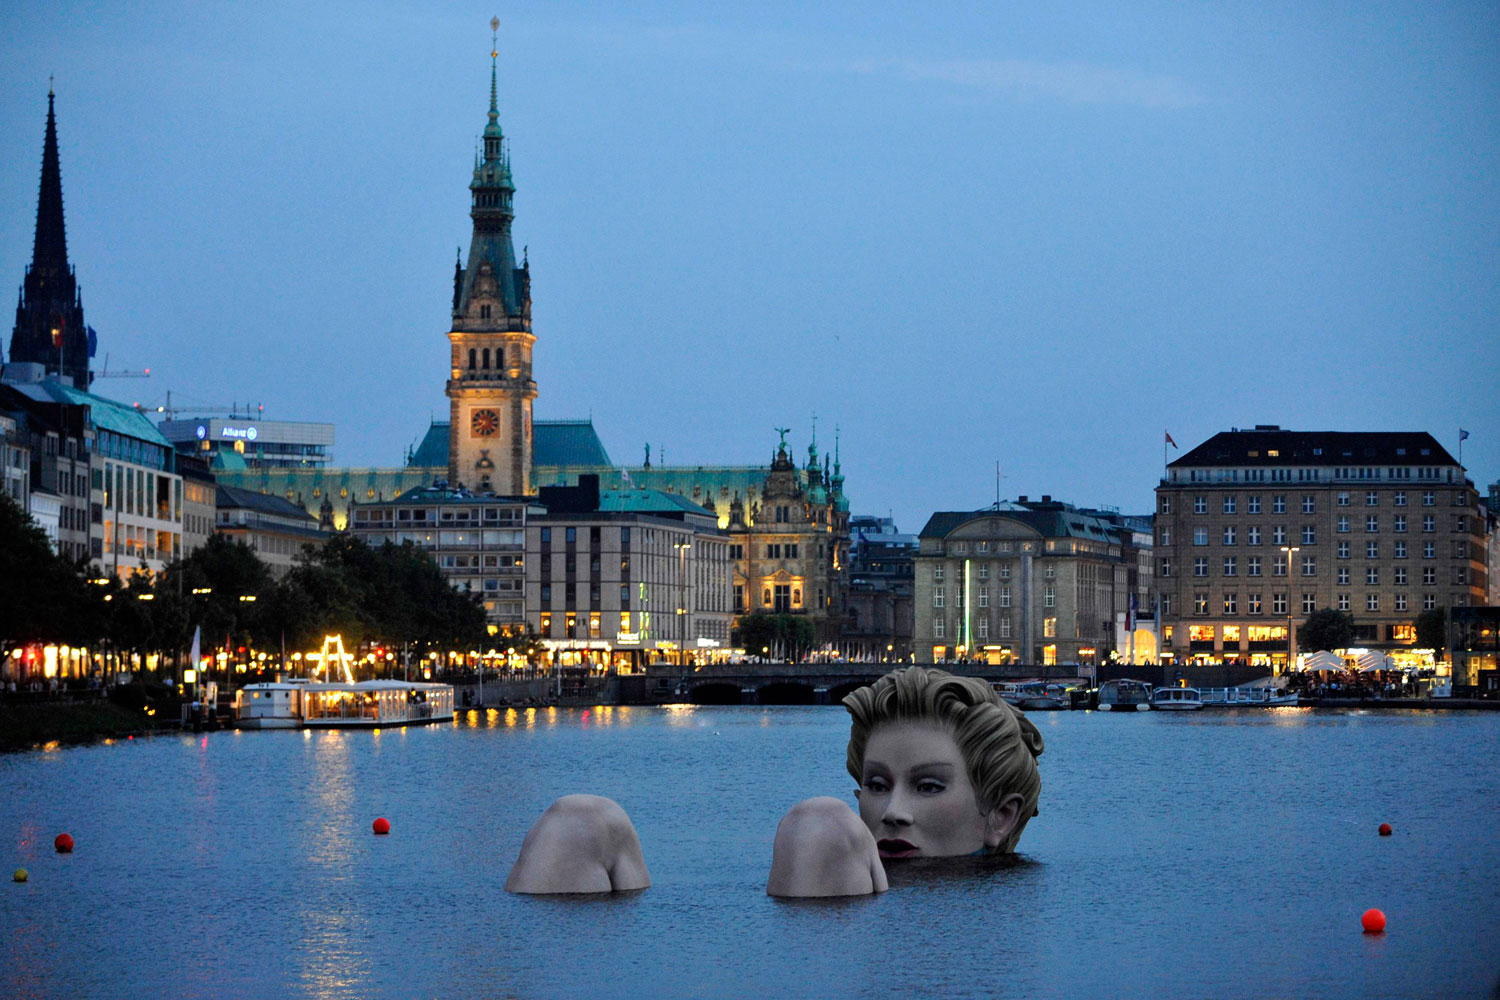 August 3, 2011. A 'mermaid' sculpture created by Oliver Voss is seen in the late evening hours on Alster lake in Hamburg. The four-metre-high sculpture dubbed  Riesen-Nixe  (grand mermaid) or  Badenixe  (bathing beauty) will be on display until August 12.